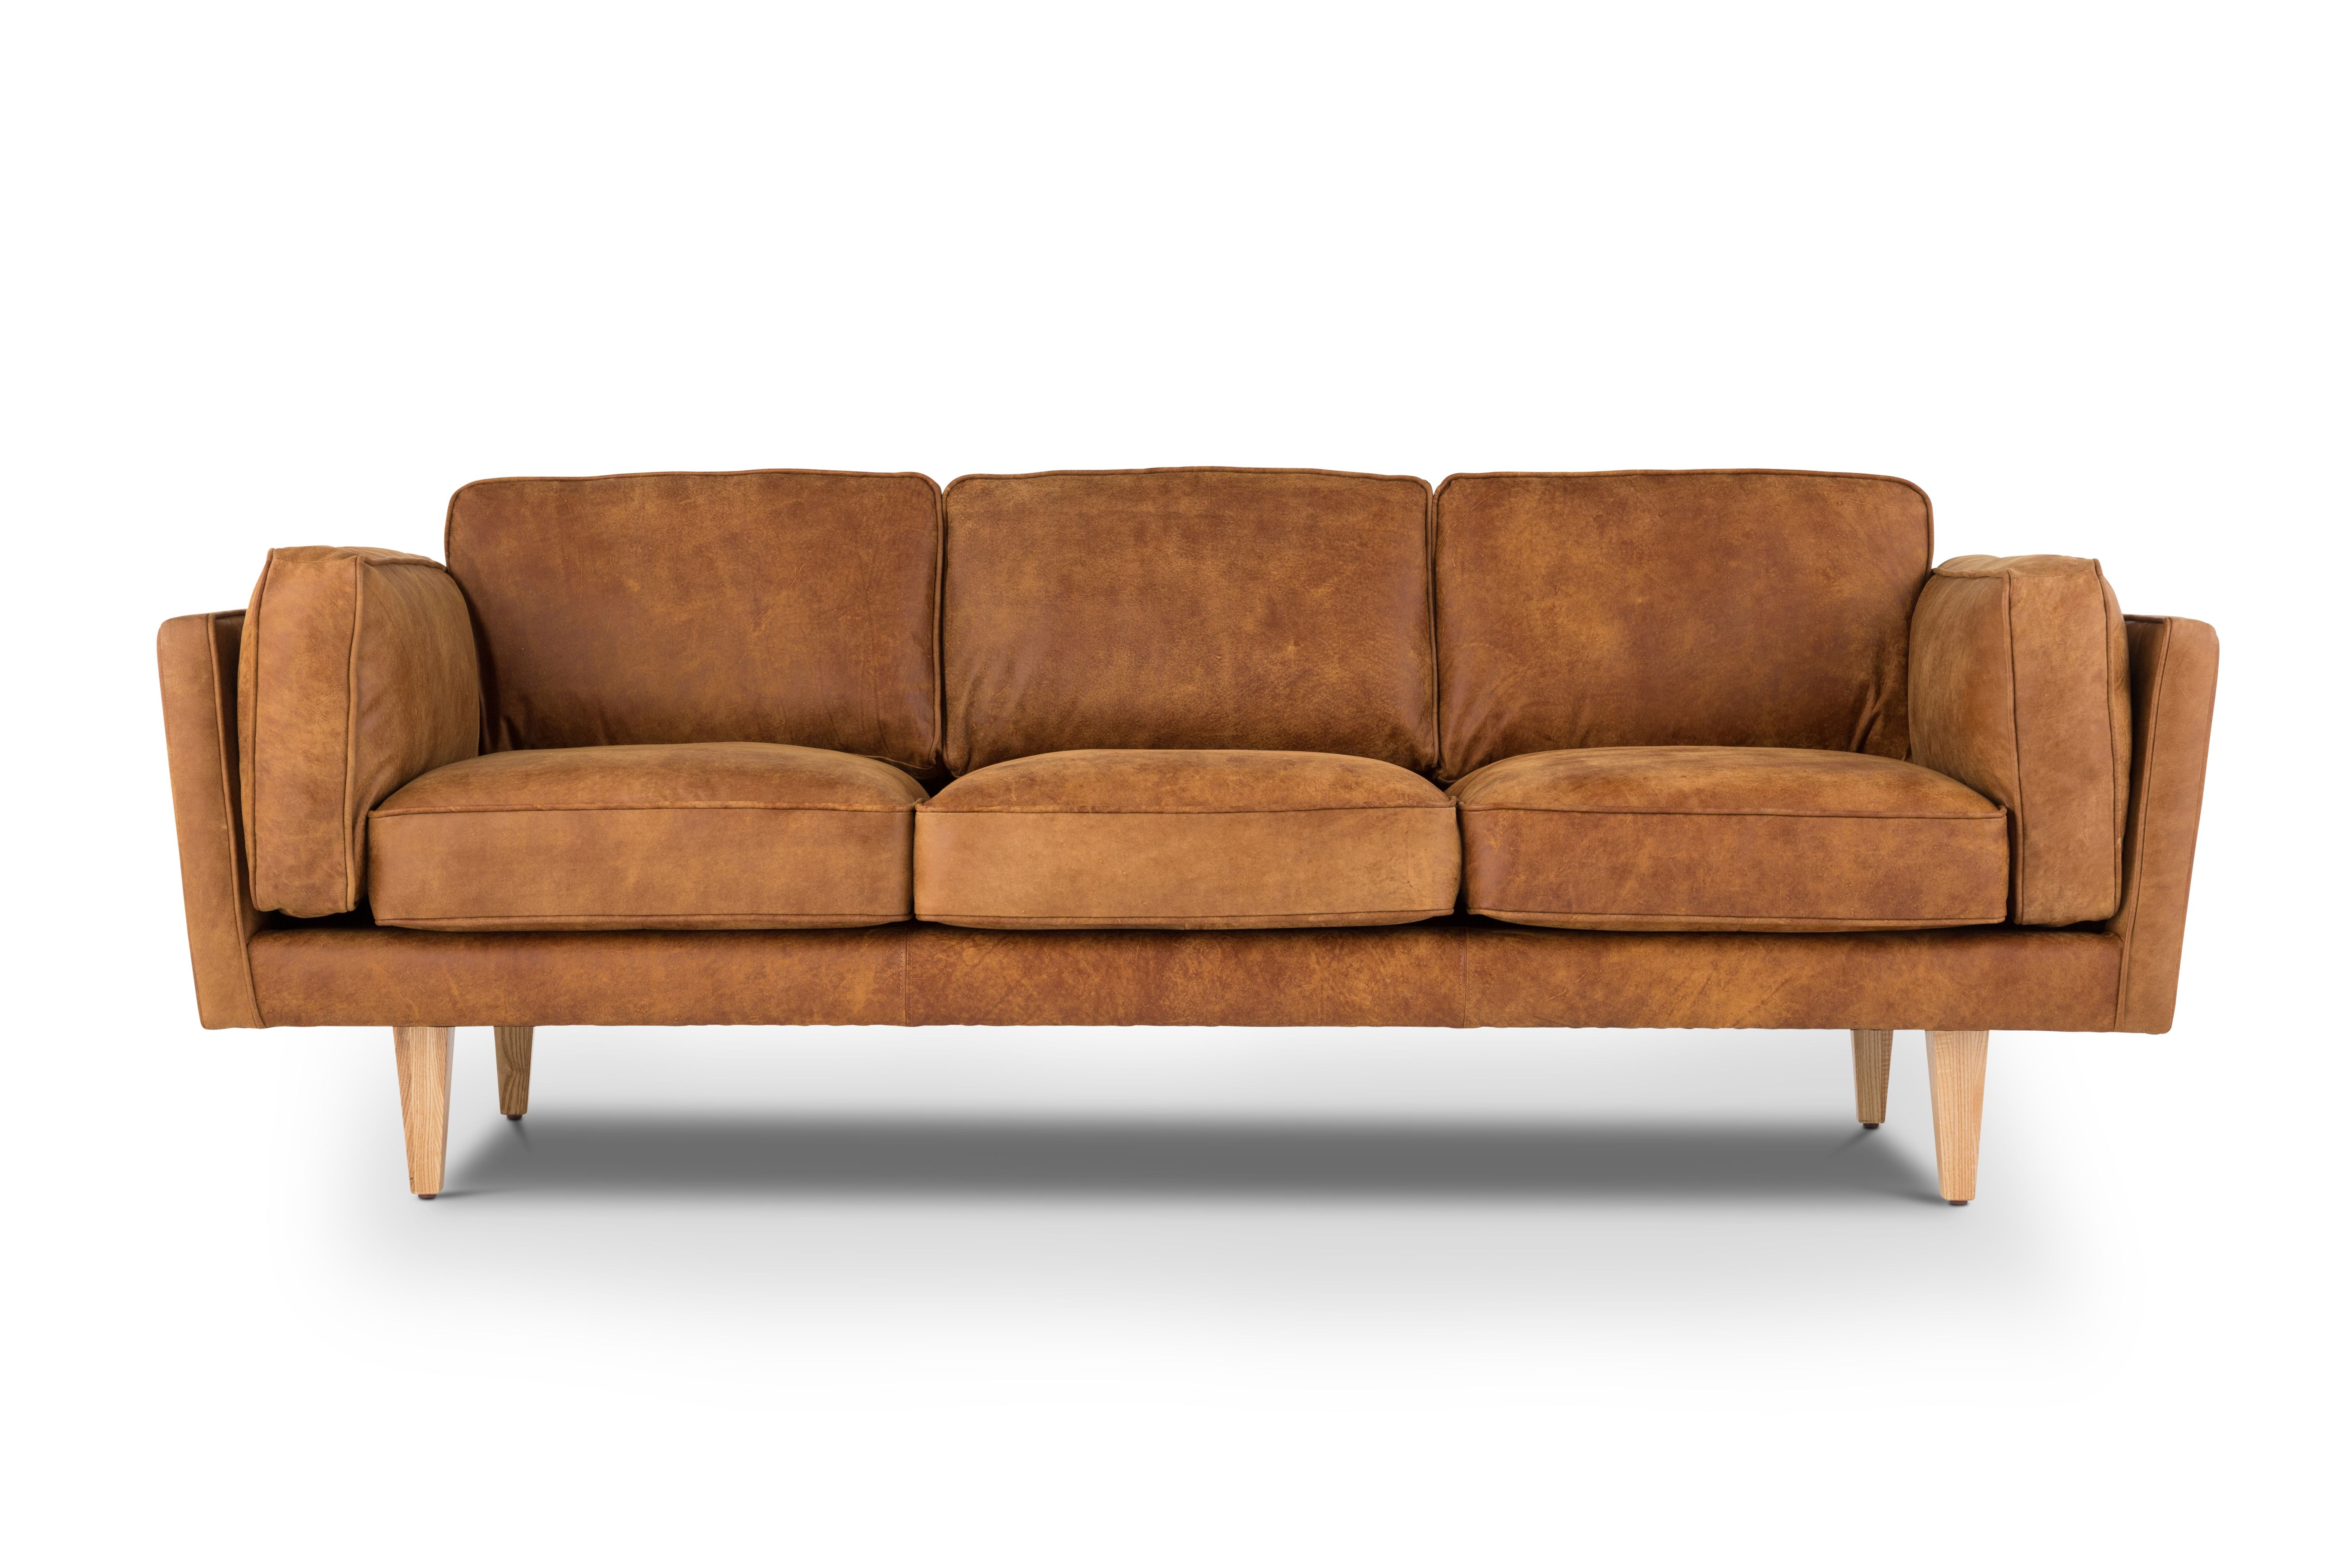 Reyna In Outback Tan Leather Style/Type   Mid Century Modern Sofa / 3 Seat  Leather Sofa